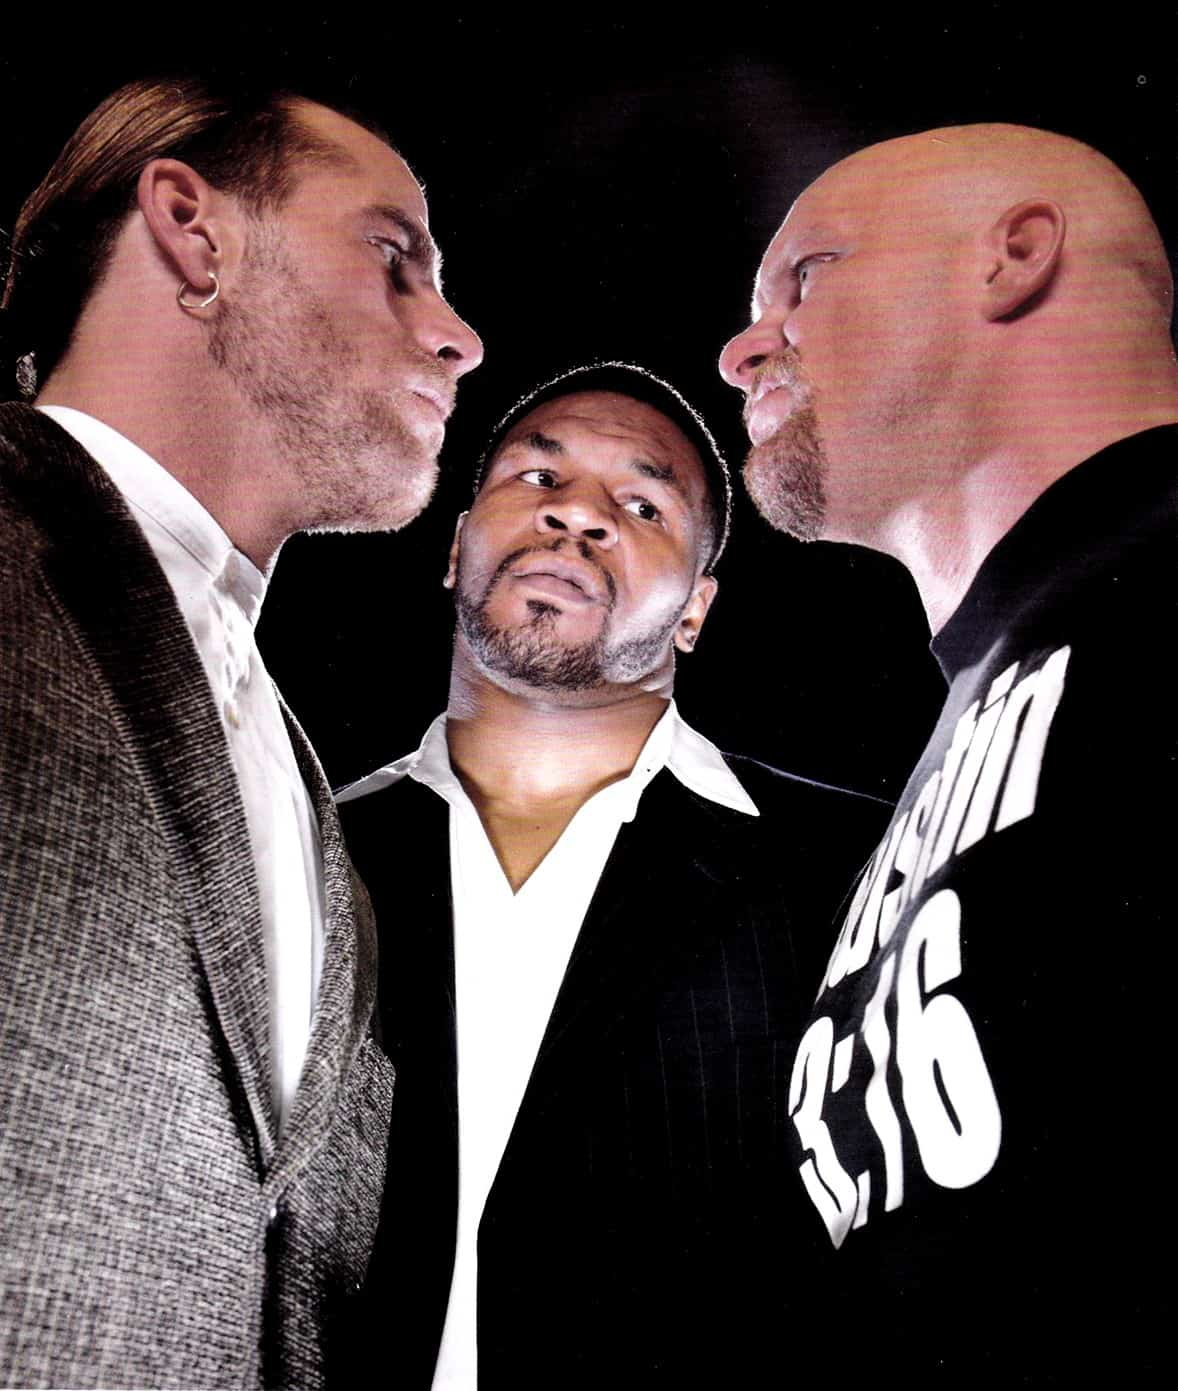 Promo shot for WrestleMania 14 of Steve Austin and Shawn Michaels facing each other with Mike Tyson in between them